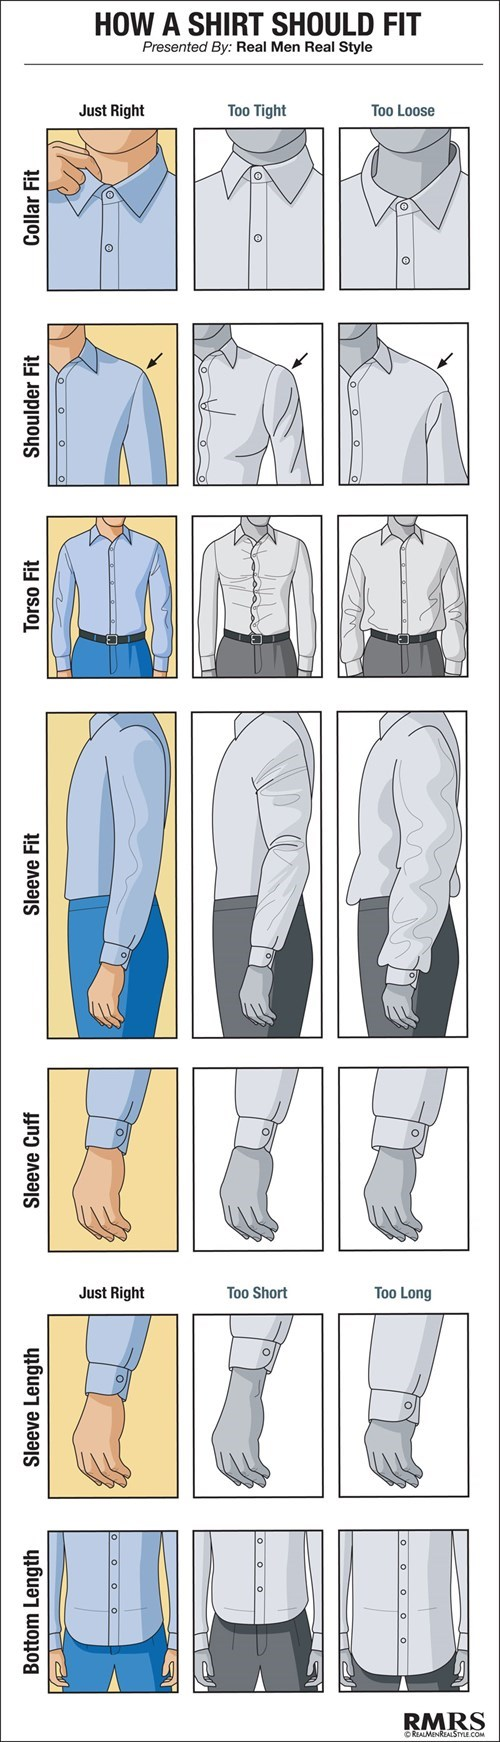 dress shirt infographic fit poorly dressed - 8236545280